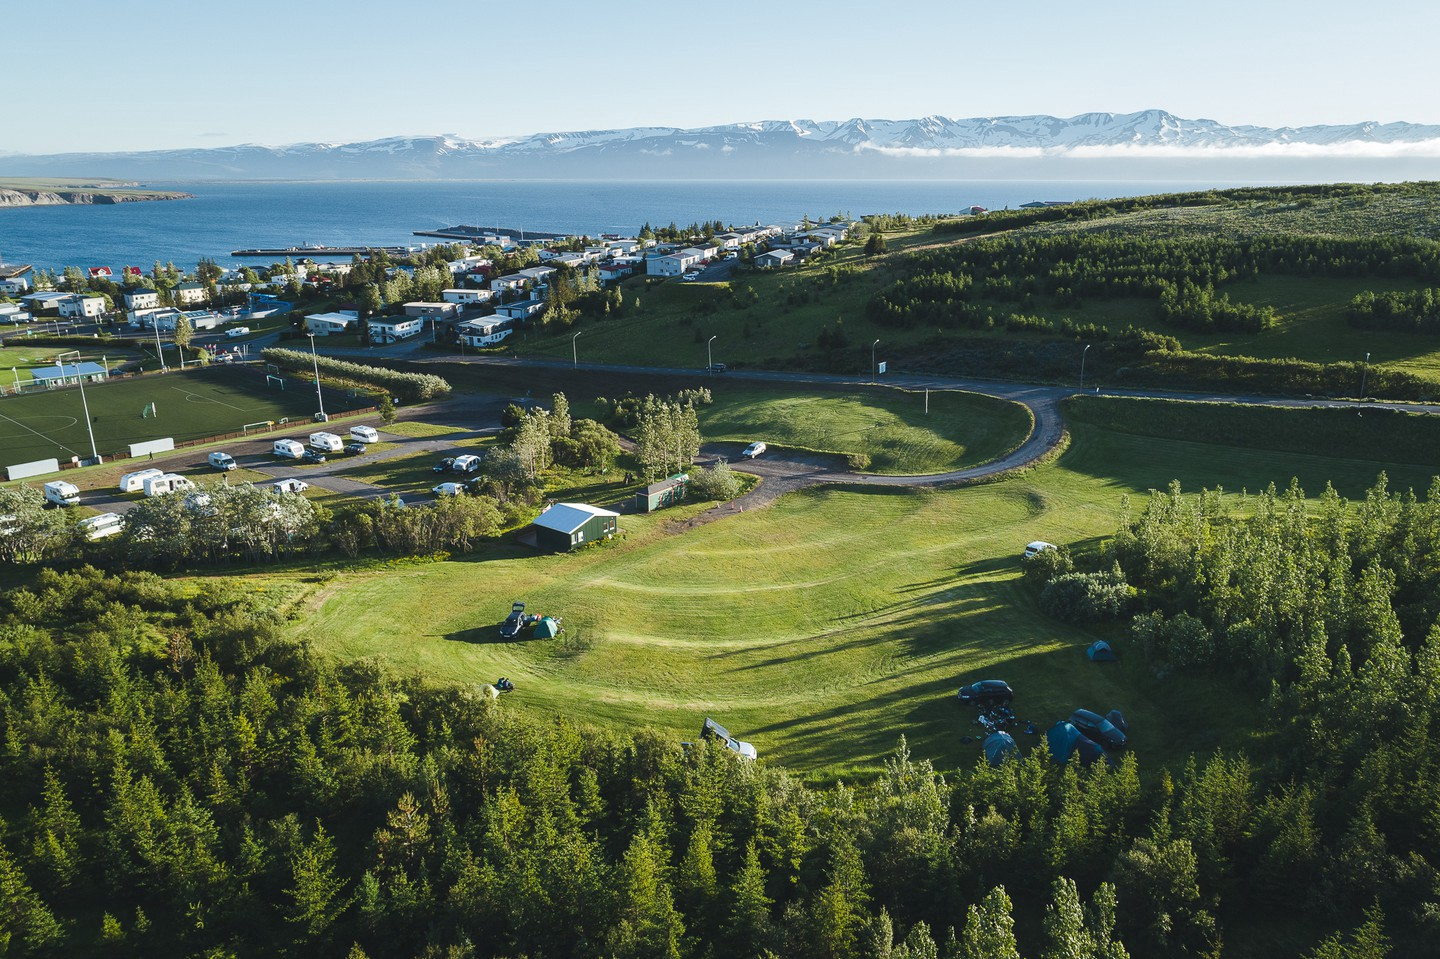 A campsite five minutes from the harbour is ideal if you're wanting to experience the Icelandic great outdoors | © Ales Mucha